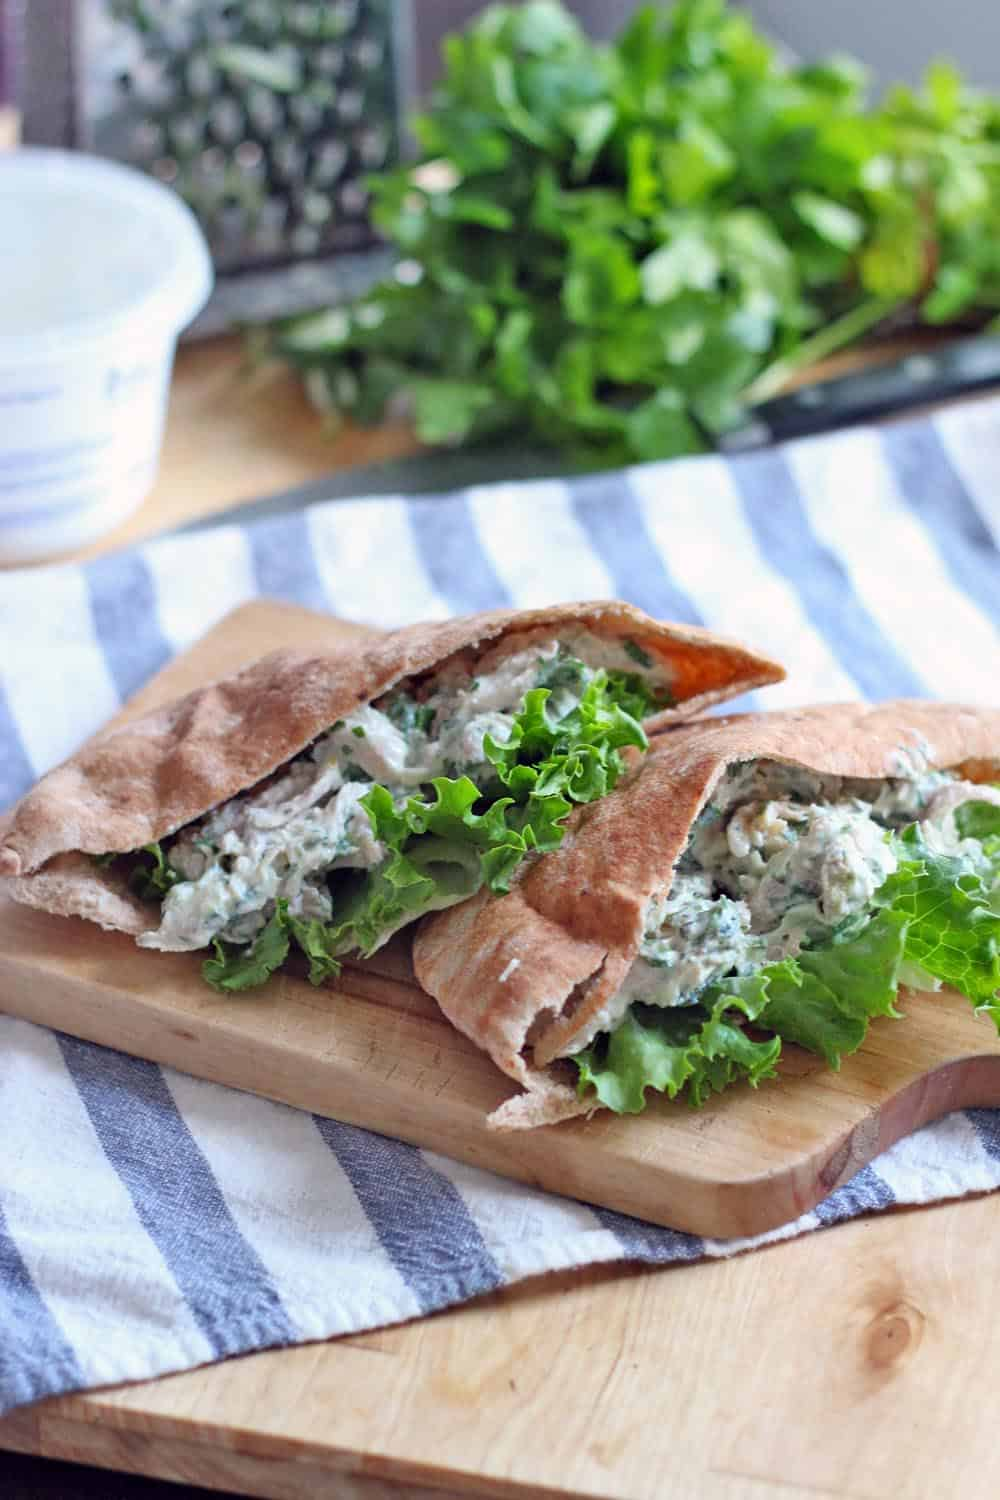 A pita pocket stuffed with tzatziki chicken salad on a striped towel.